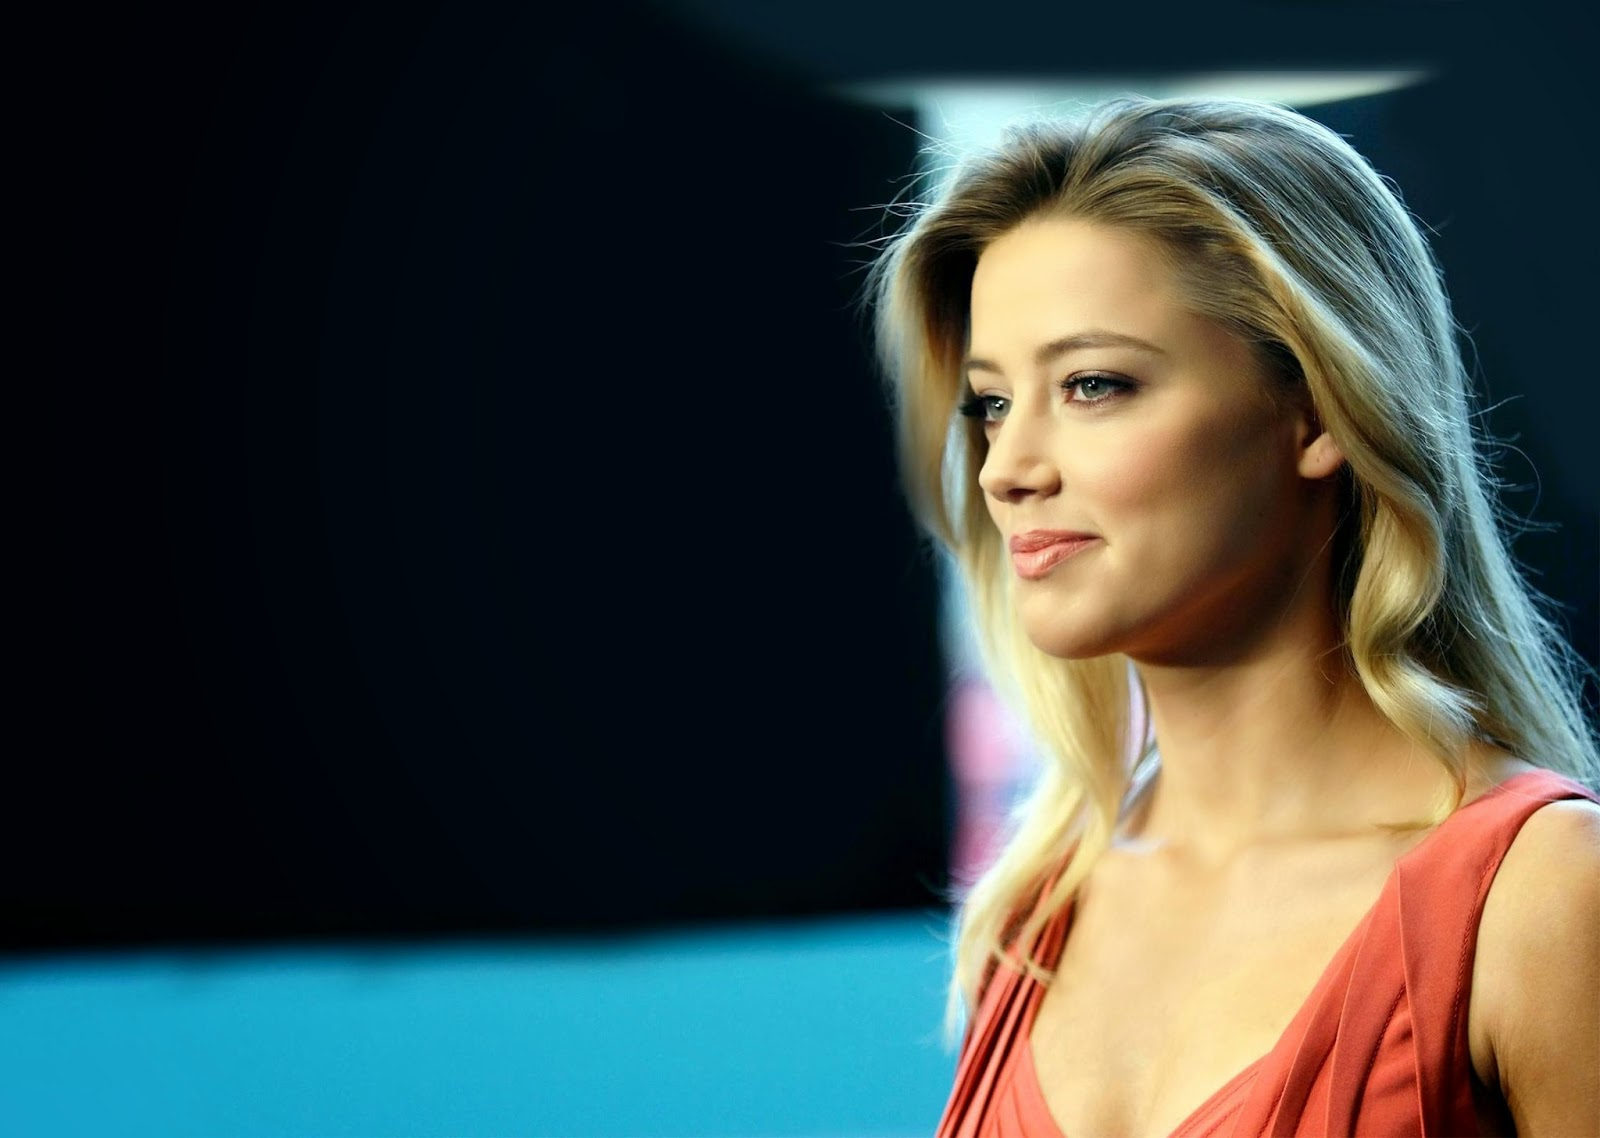 Amber Heard Hd Wallpapers Free Download